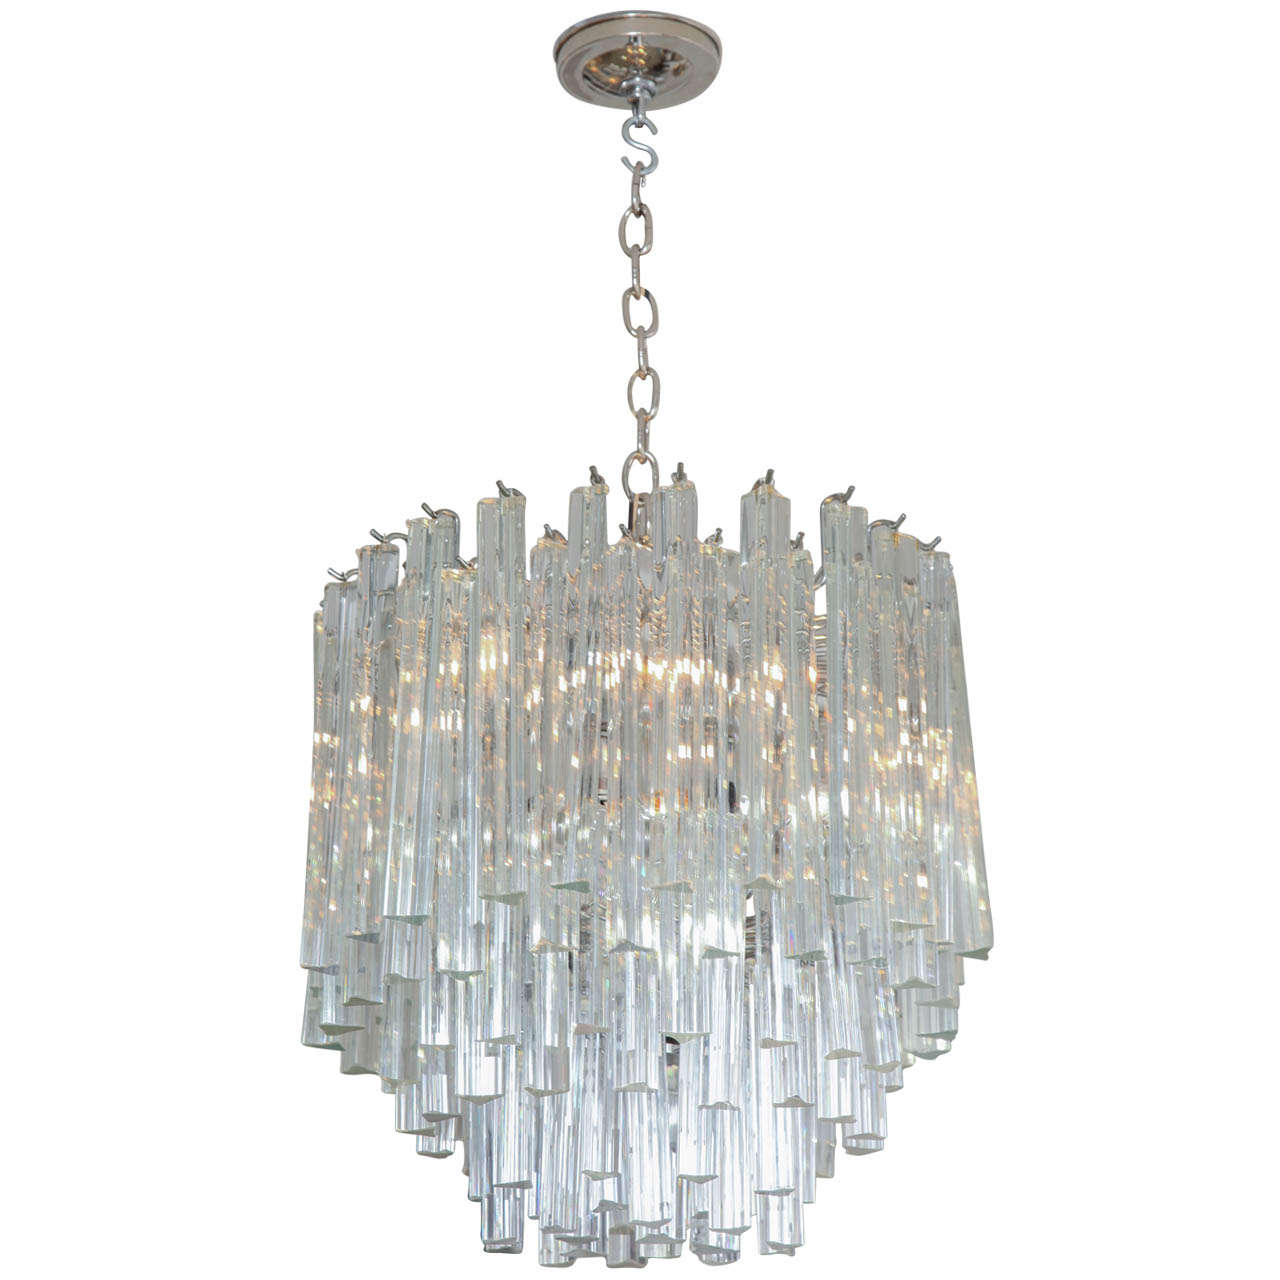 Six tier venini chandelier for sale at 1stdibs six tier venini chandelier 1 arubaitofo Images